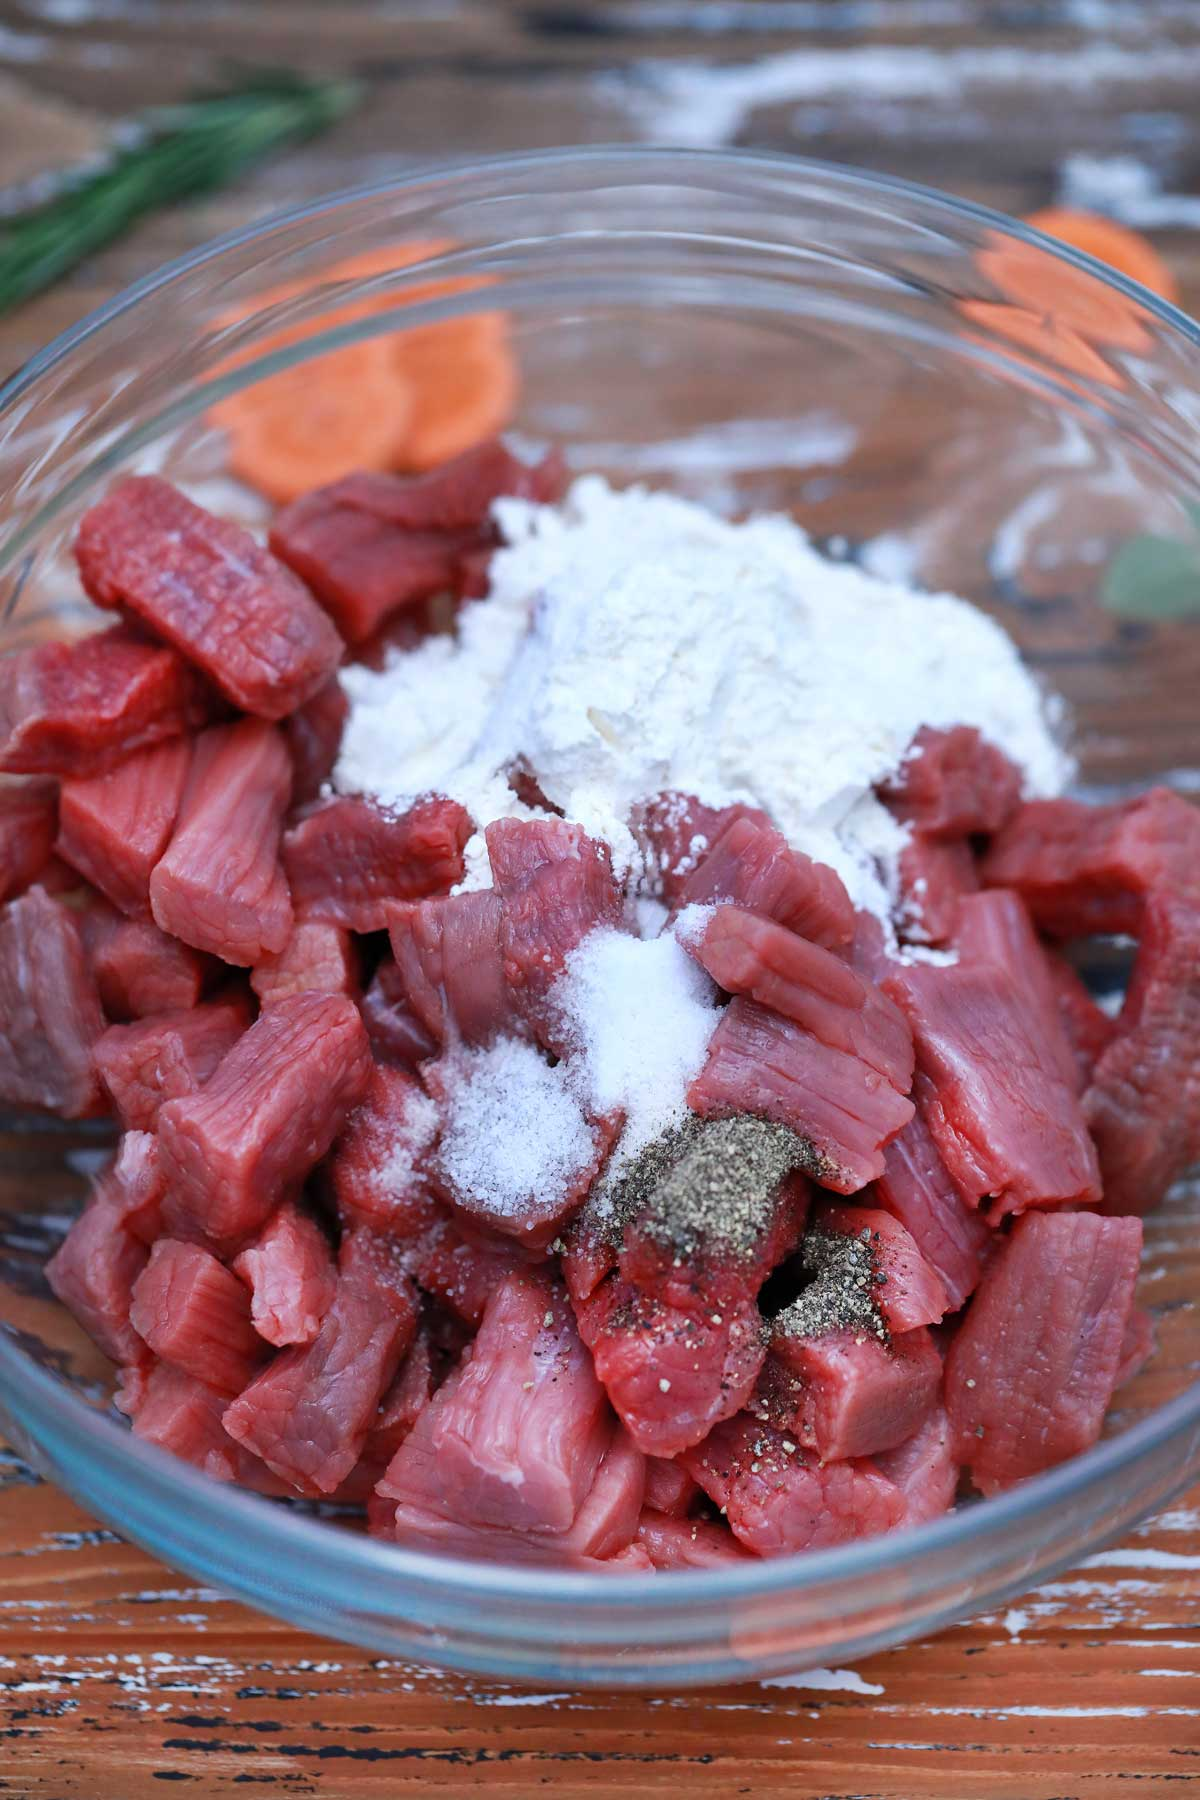 Beef pieces tossed with flour